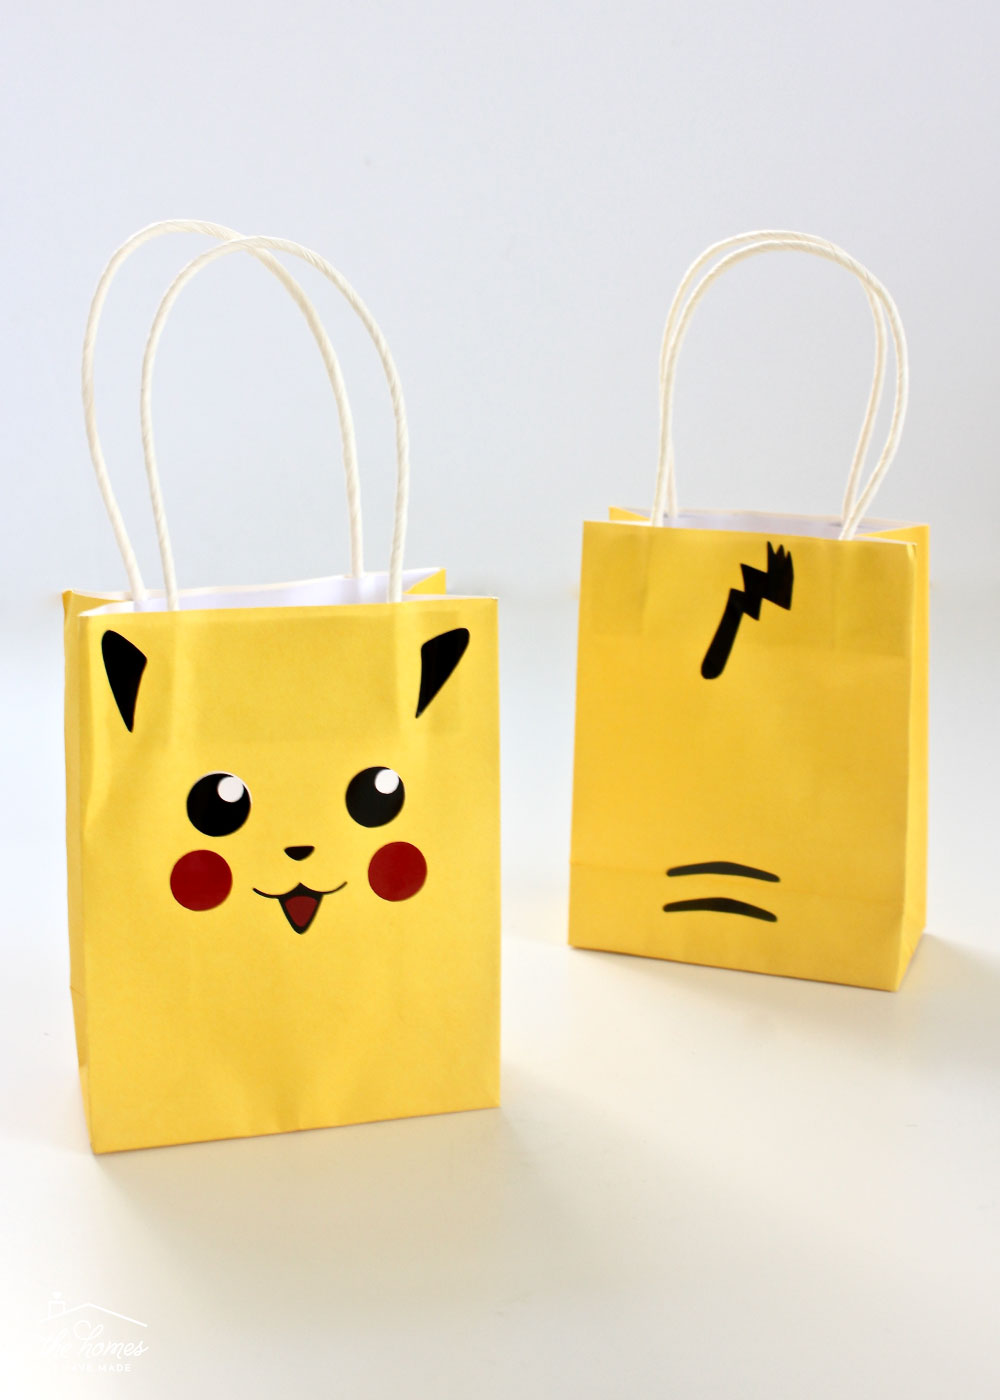 Throw A Fun Quick And Easy Pokemon Themed Party With These DIY